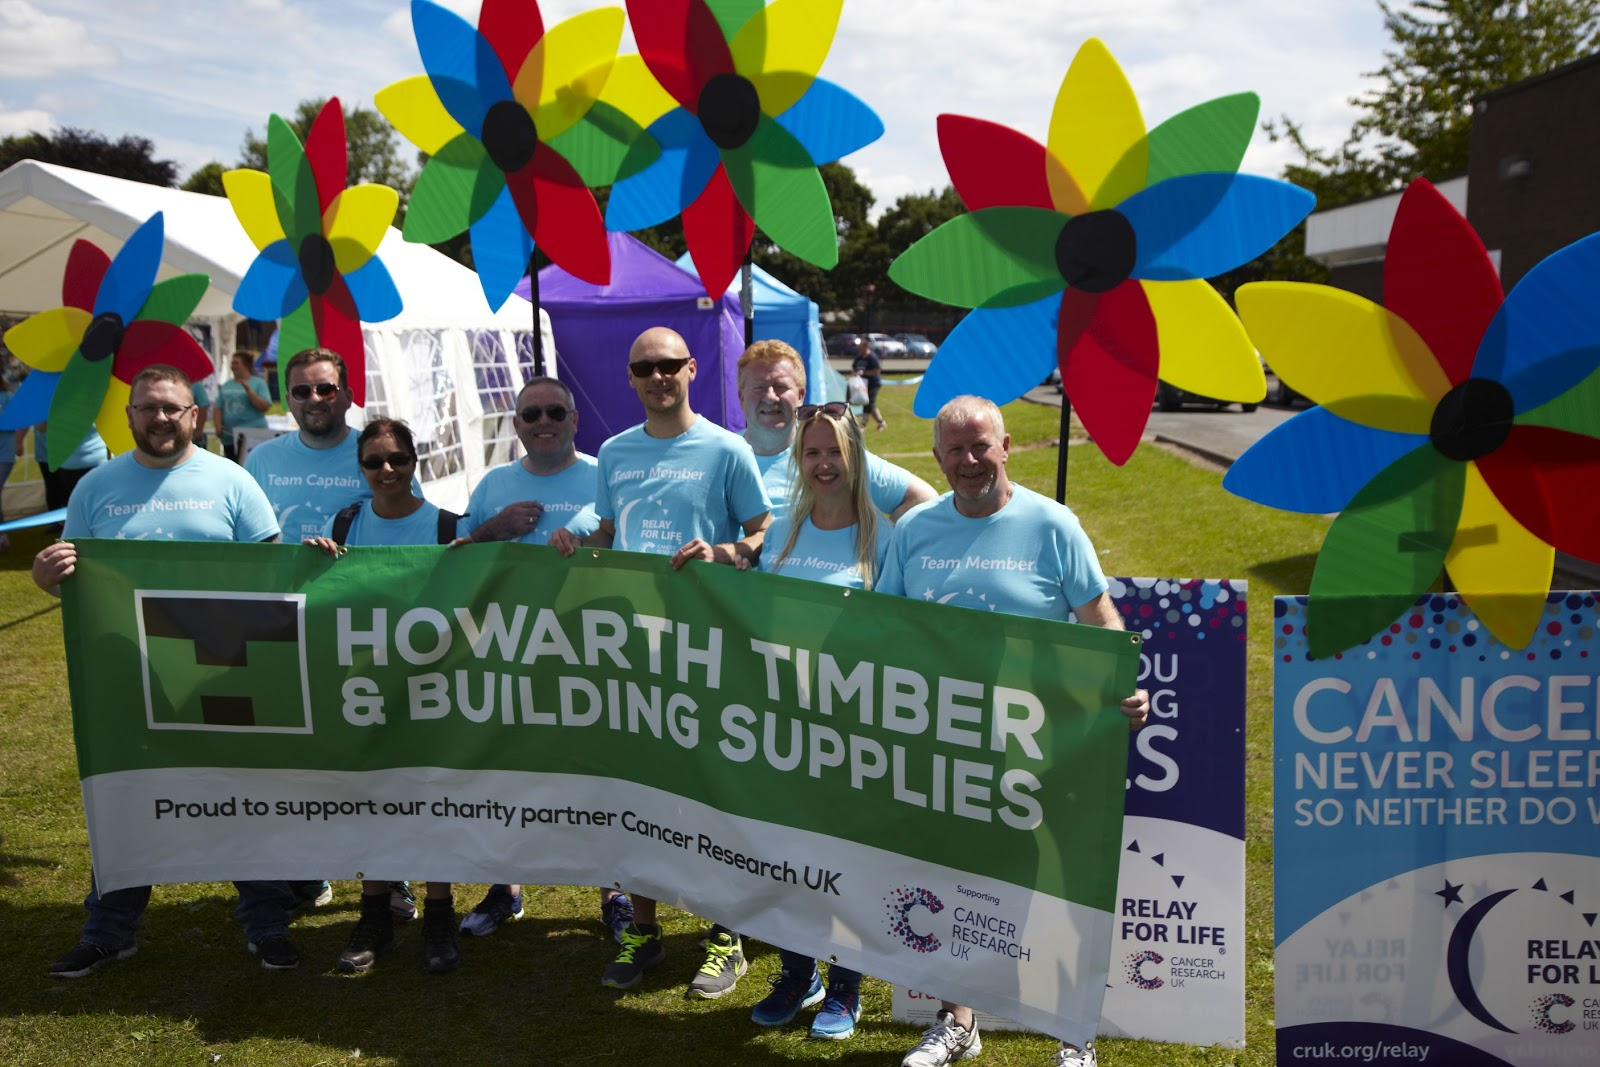 Howarth Timber and Building Supplies Took Part in Fundraising for Cancer Research UK